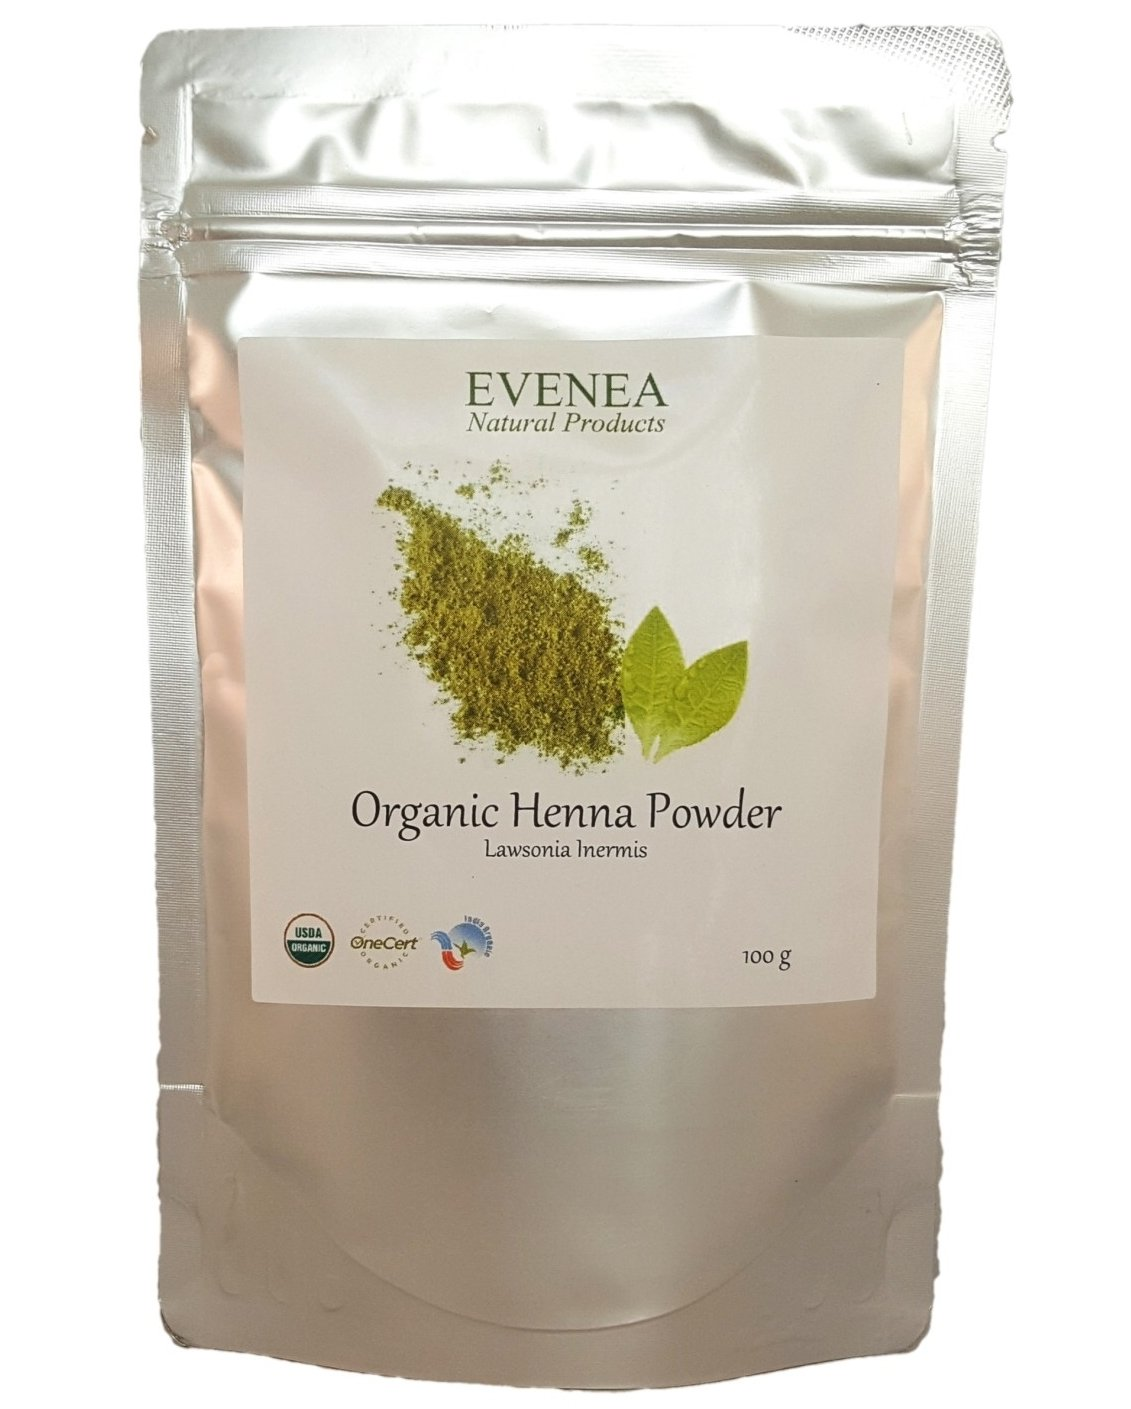 Organic Rajasthani Henna Powder Triple Sifted Body Art Quality 100g Buy Online In Gibraltar Evenea Products In Gibraltar See Prices Reviews And Free Delivery Over Gip50 Desertcart